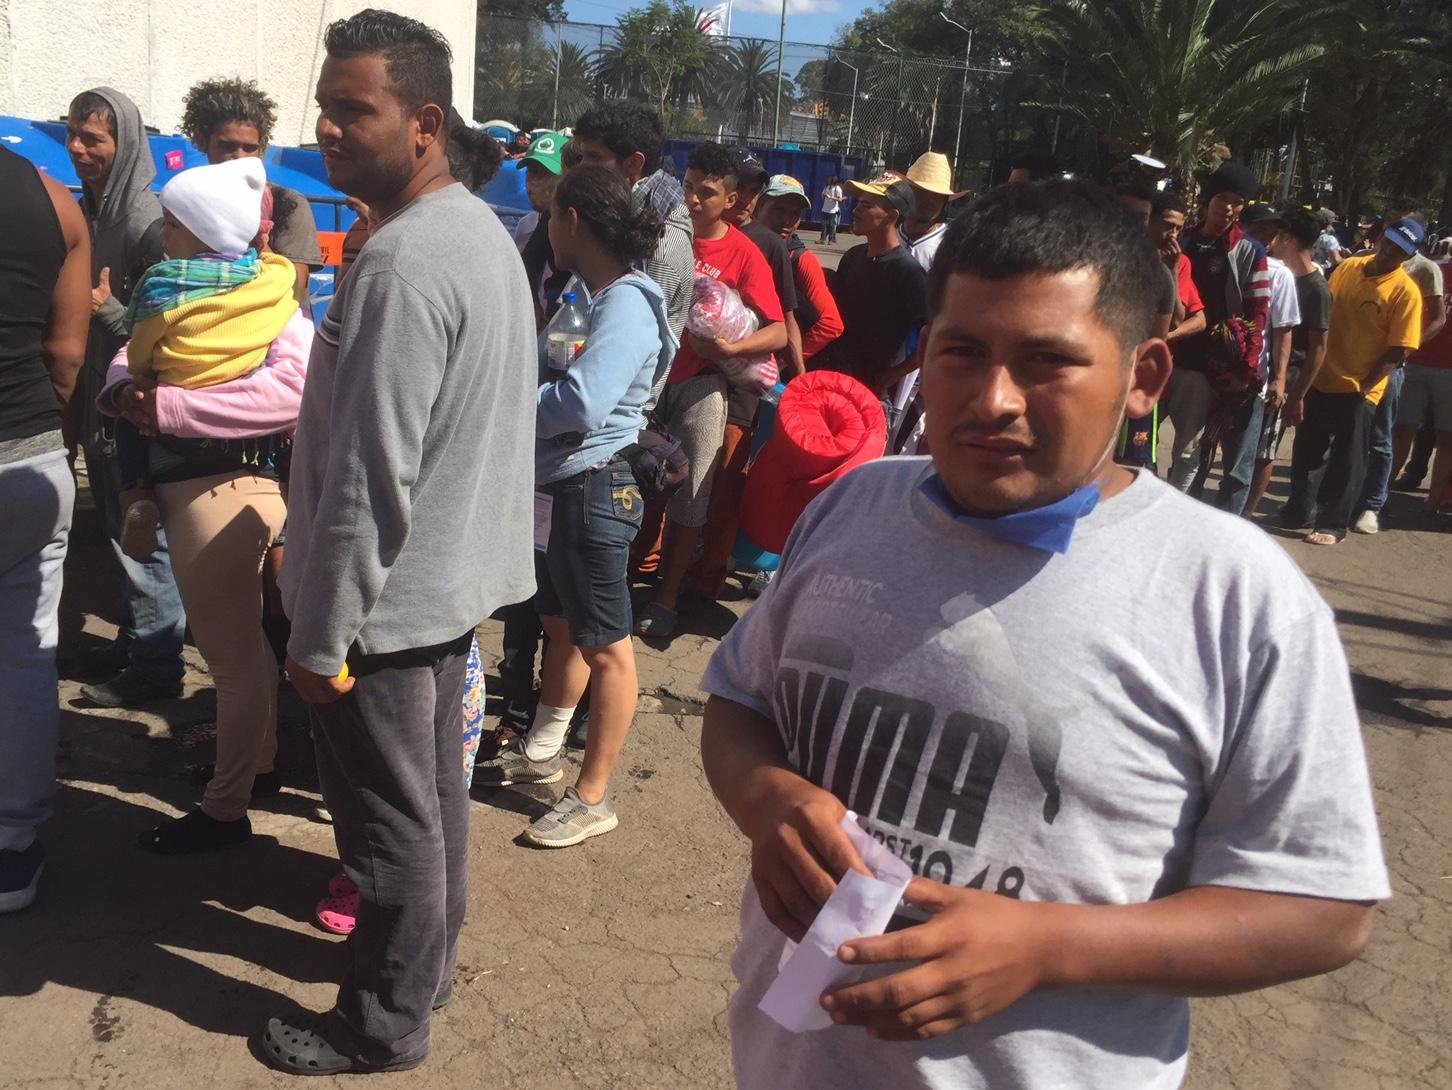 Migrants from the caravan wait on line to get their lunch at the shelter in Mexico City.